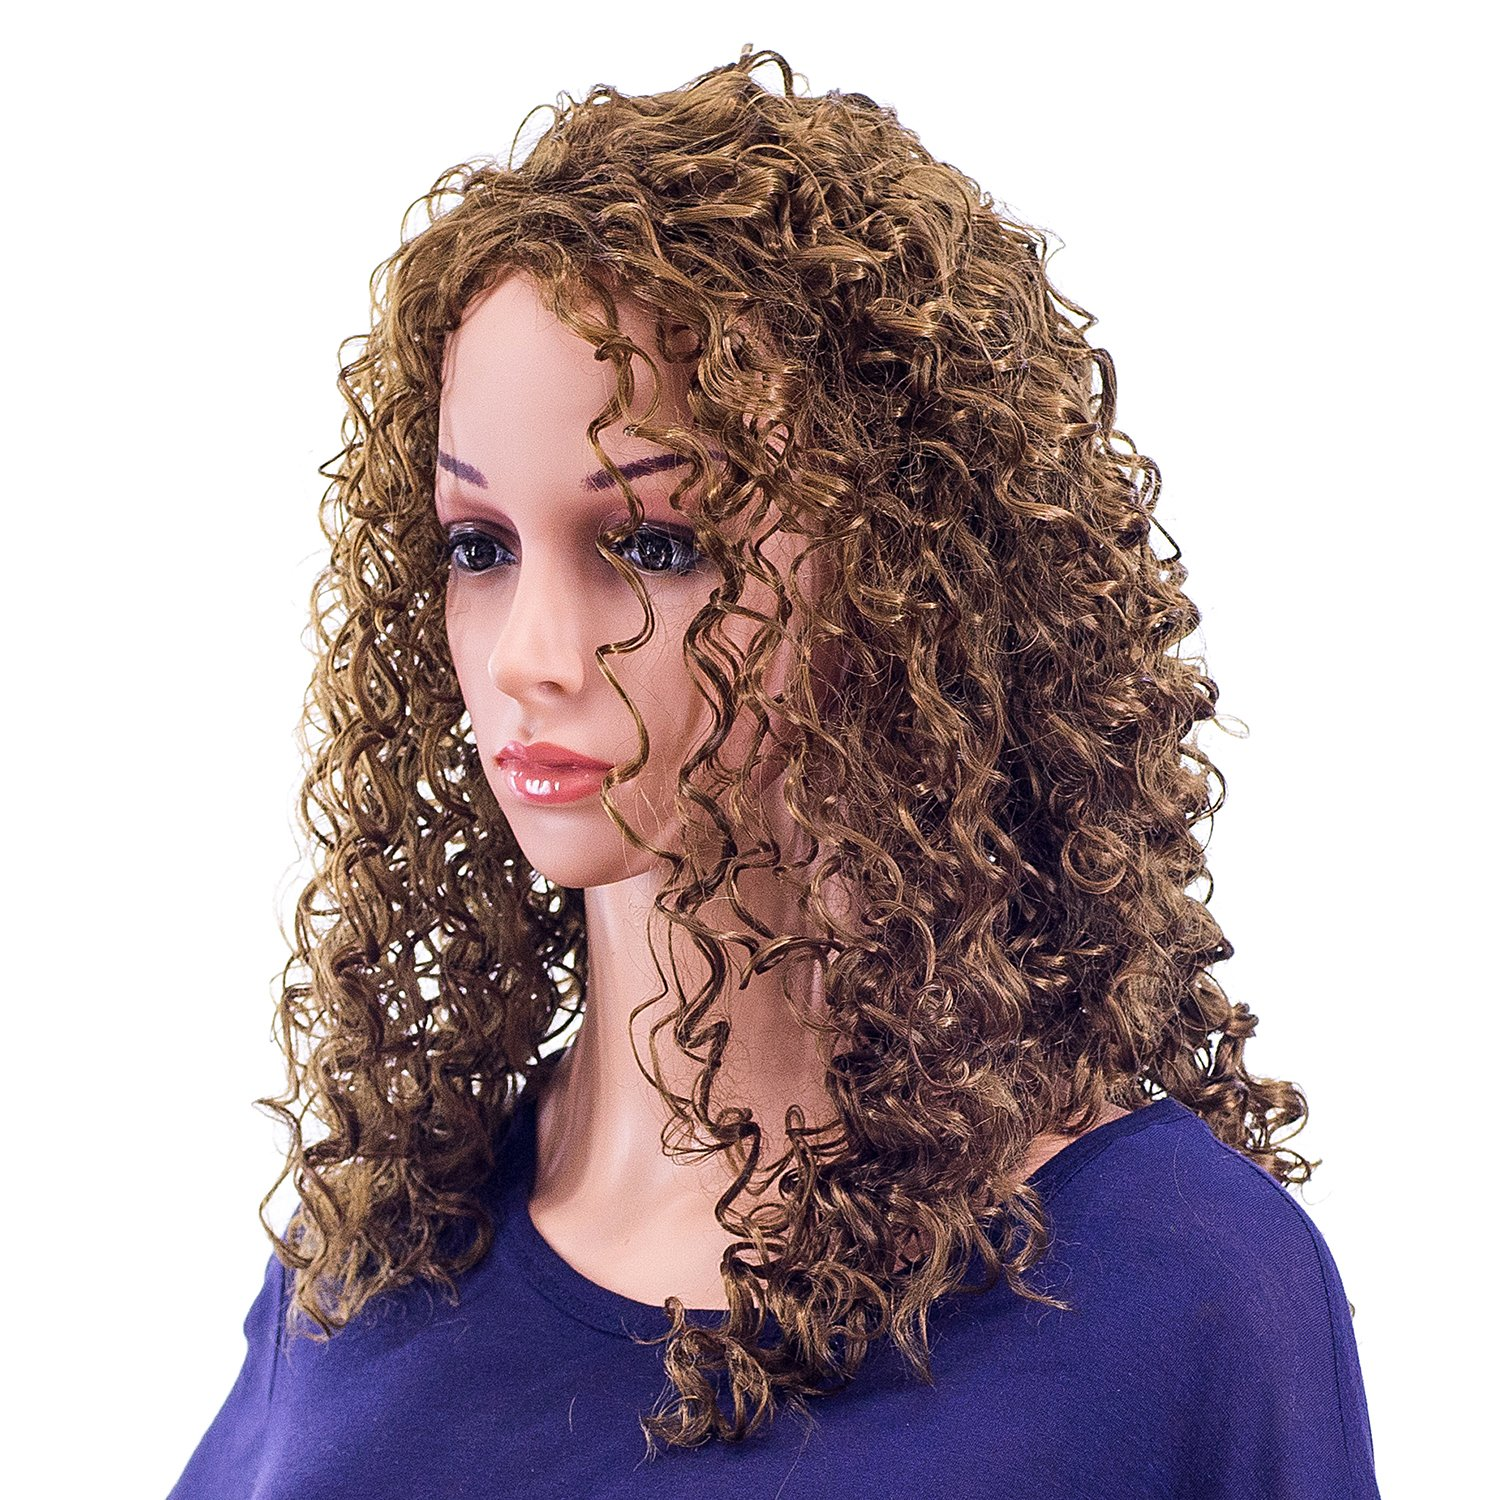 SWACC 20-Inch Long Big Bouffant Curly Wigs for Women Synthetic Heat Resistant Fiber Hair Pieces with Wig Cap (Light Dirty Brown-12#)